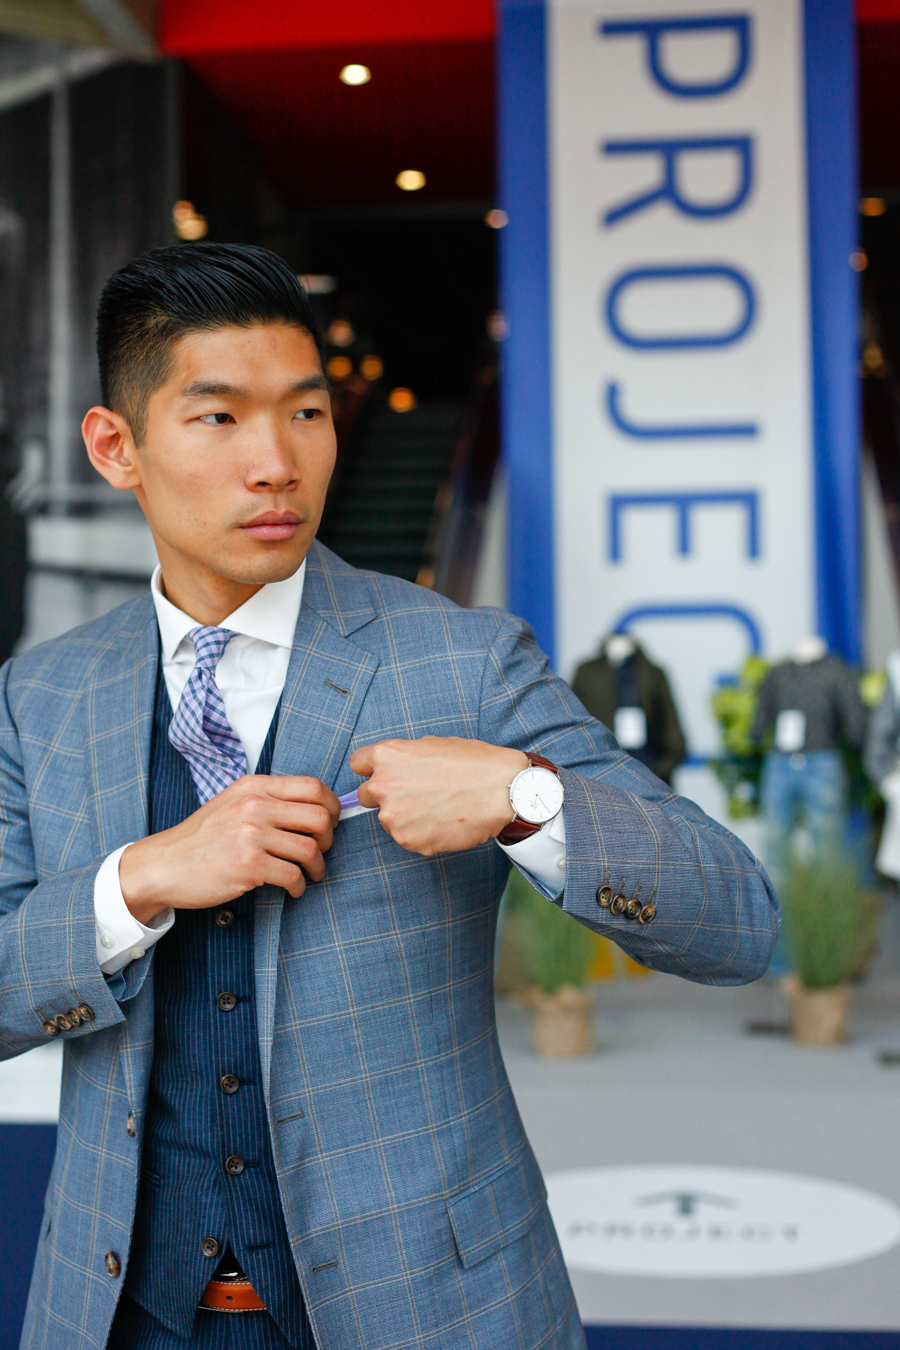 BloggerPROJECT NY Levitate Style | Bonobos Pinstrip Vest and Pants, Brooks Brothers Sport Coat, Johnston & Murphy Cates Buckles Strap, Daniel Wellington, Menswear, Project NY